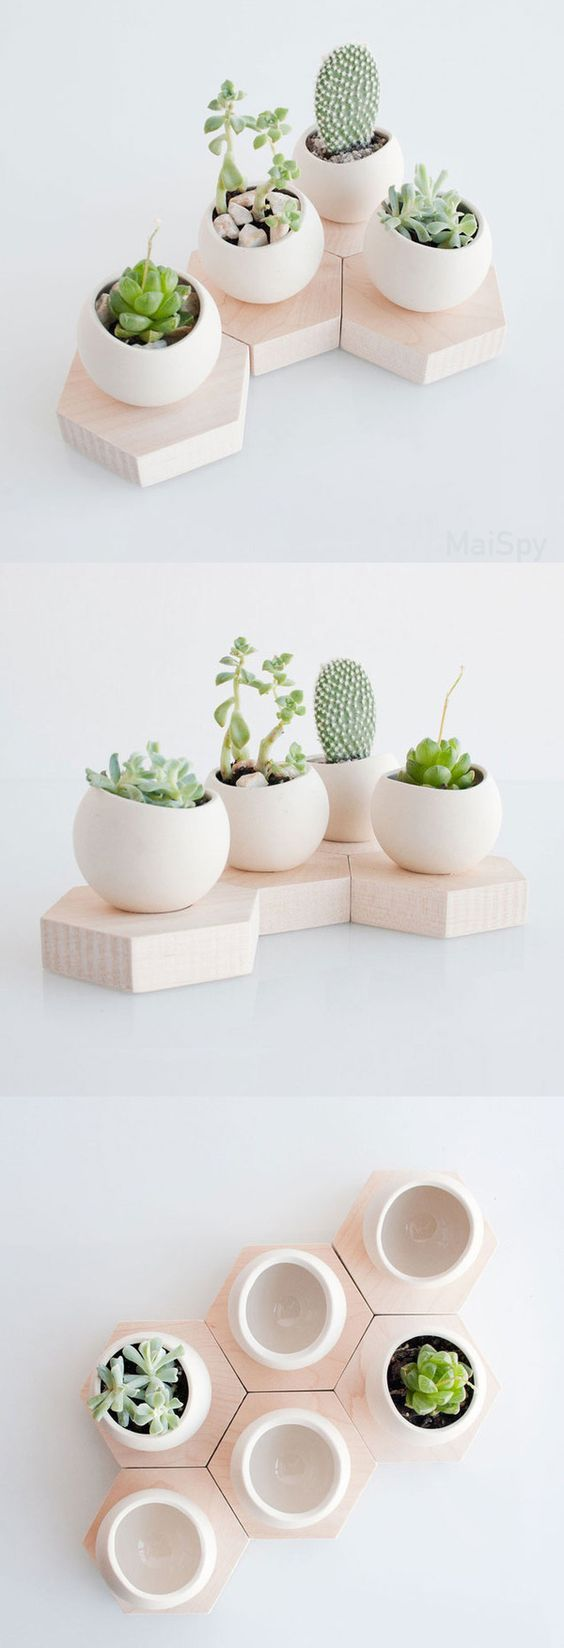 Just admire the cacti and succulents – Quick Post